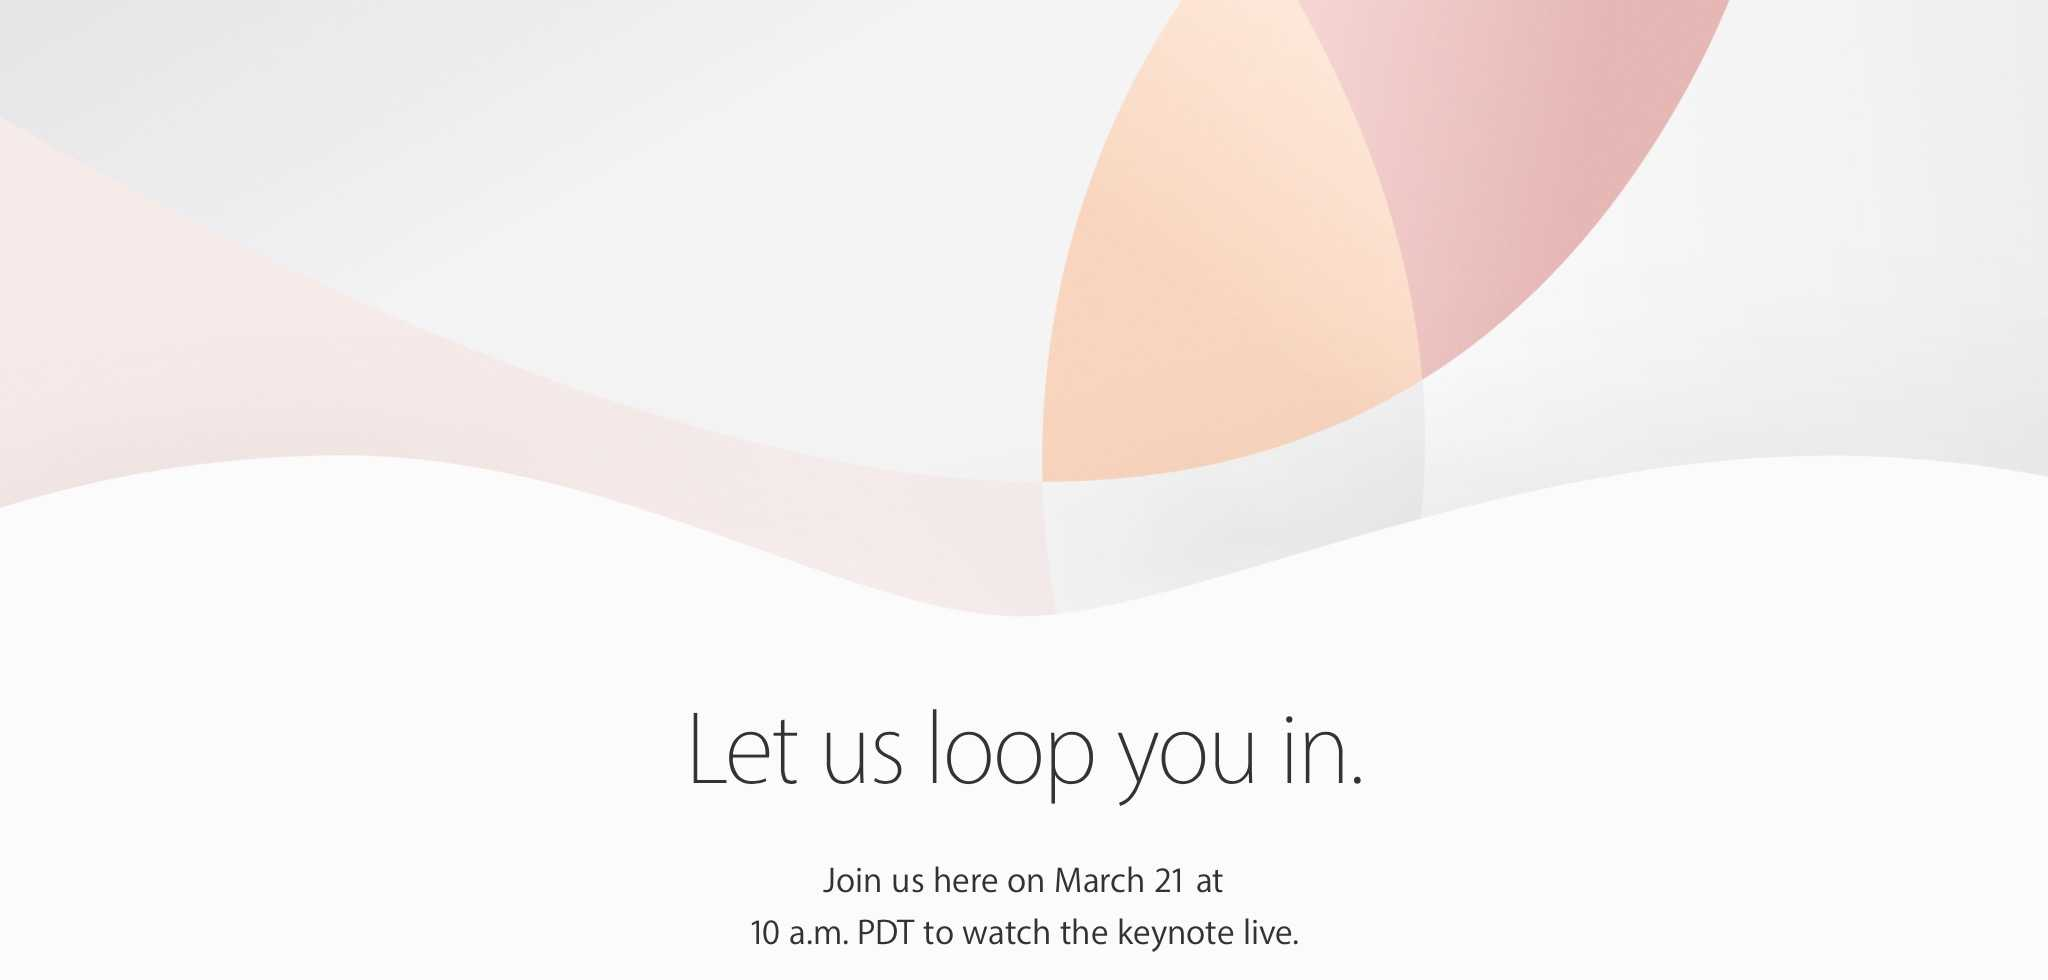 Apple March 21 event invite